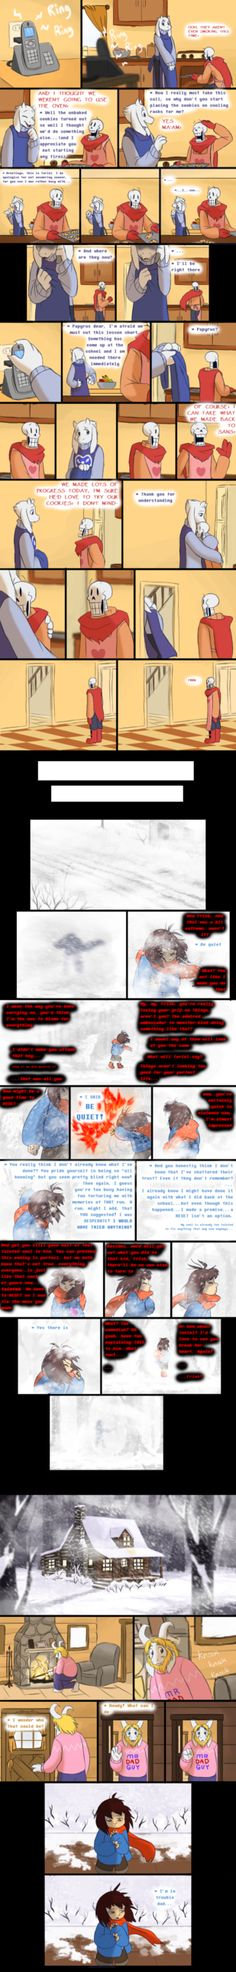 Endertale - Page 24 by TC-96.deviantart.com on @DeviantArt